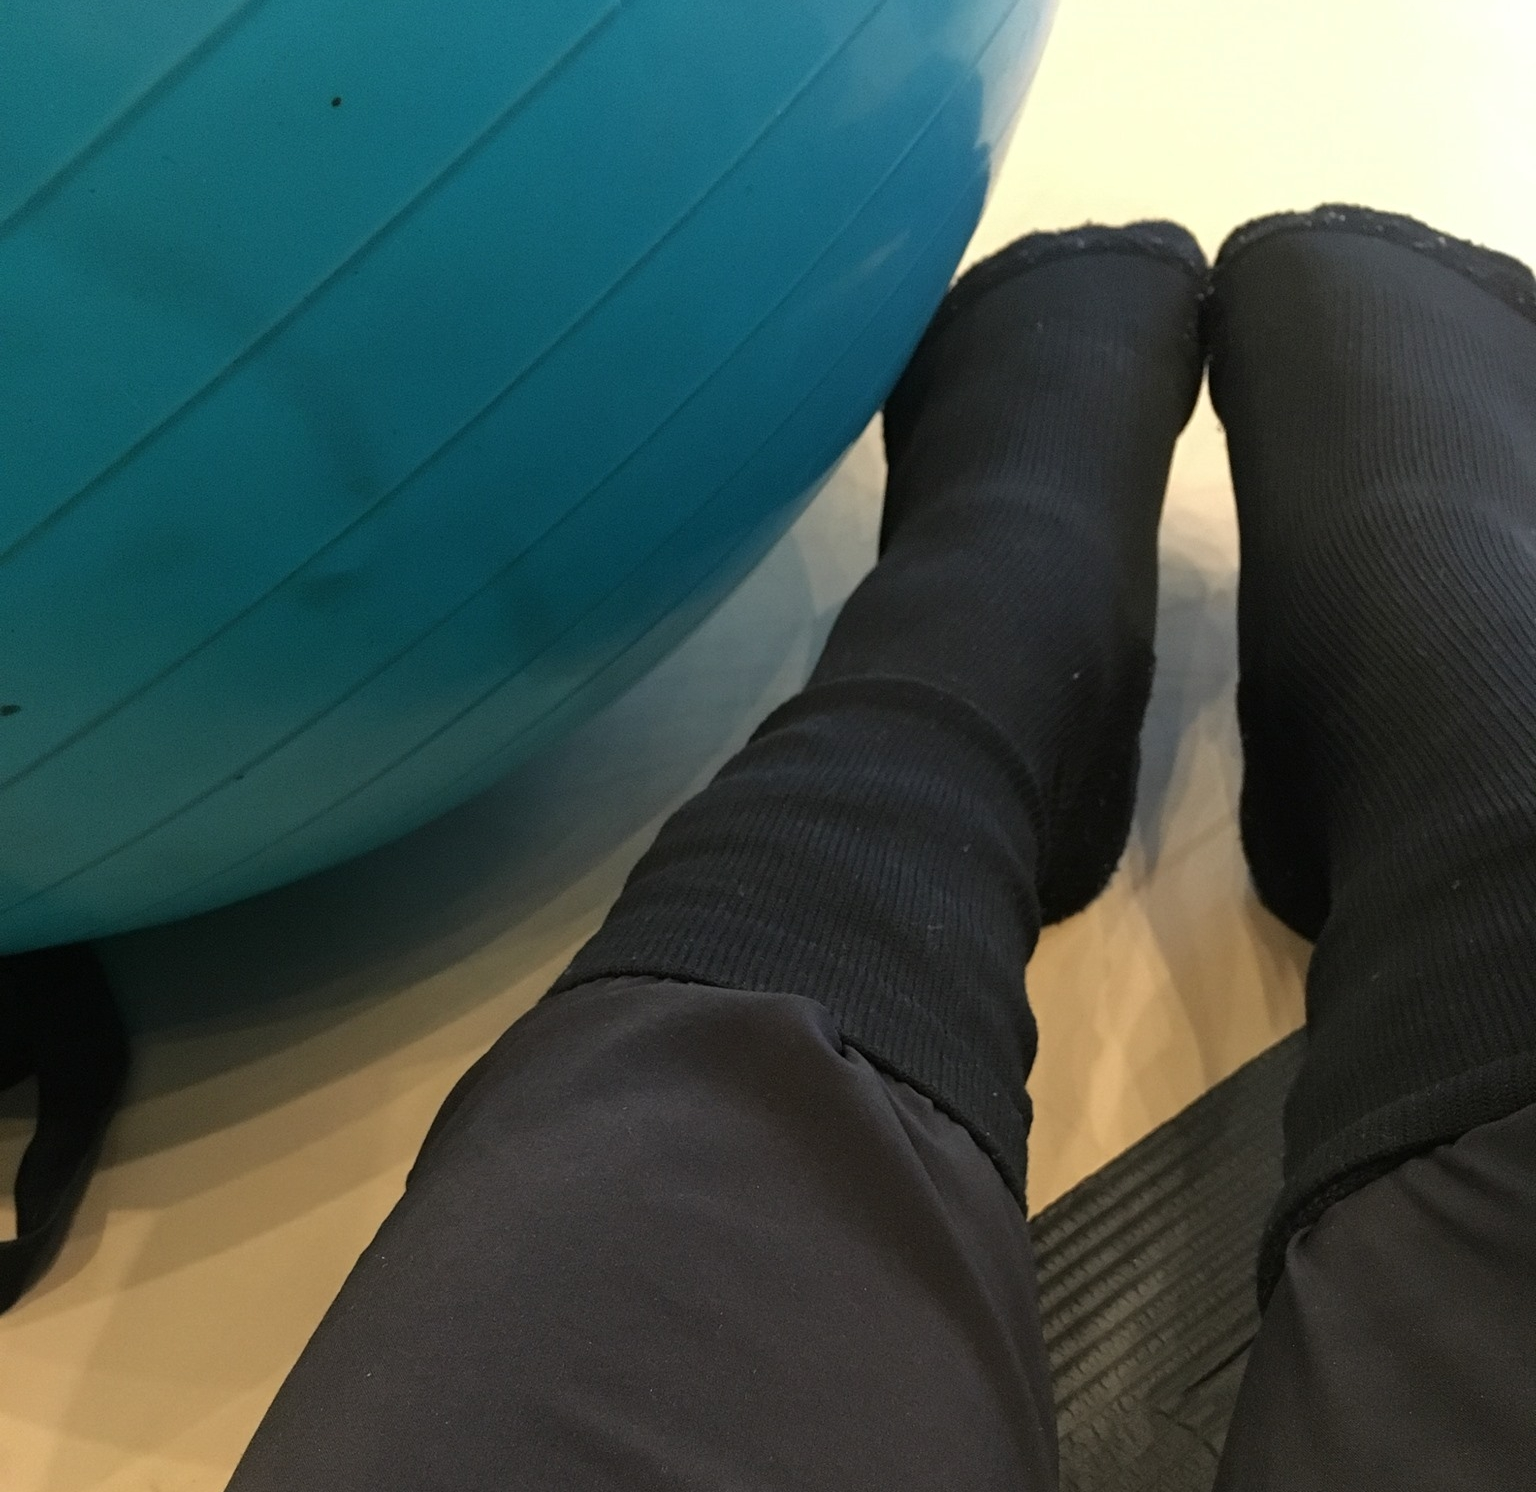 Wearing my Apolla INFINITE Shocks at a 2017 Progressing Ballet Technique™ Workshop